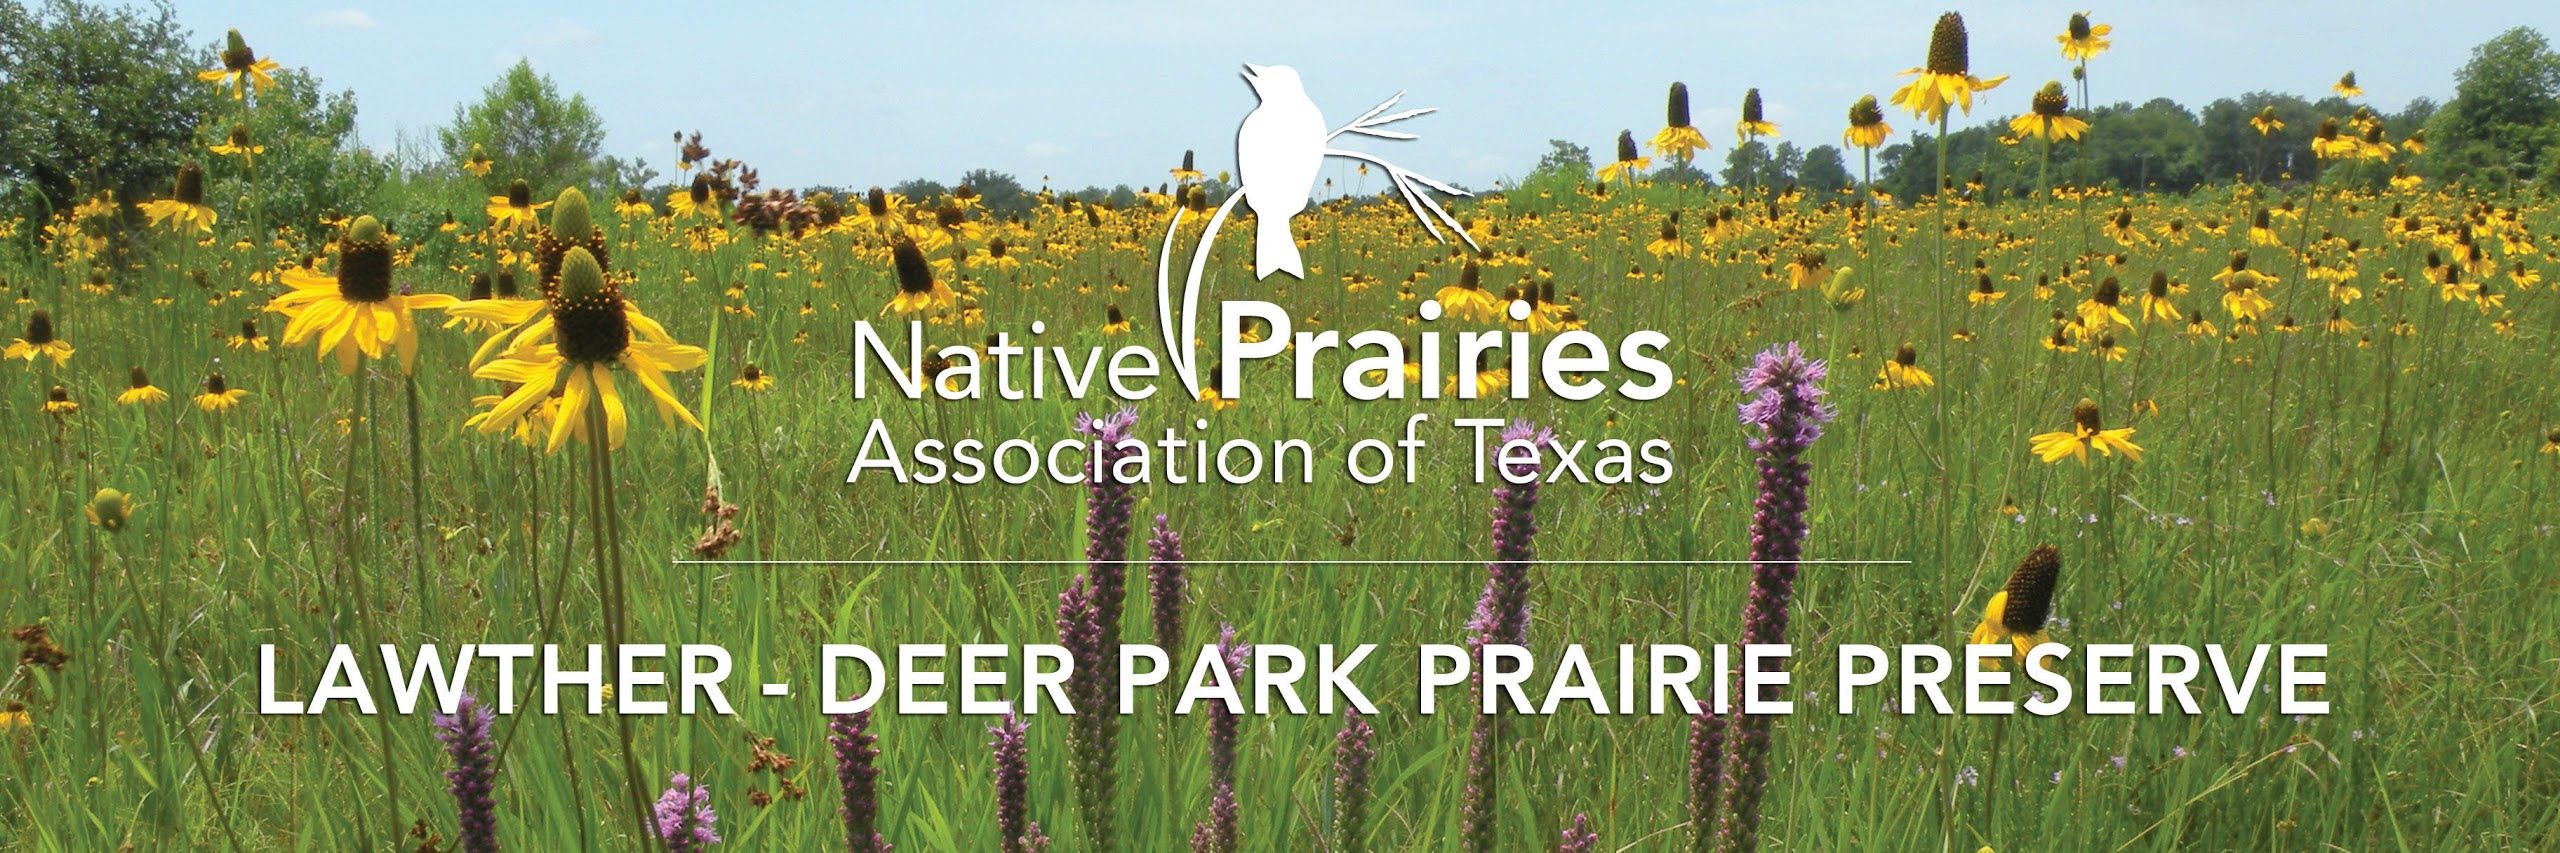 https://hnpat.wordpress.com/deer-park-prairie/